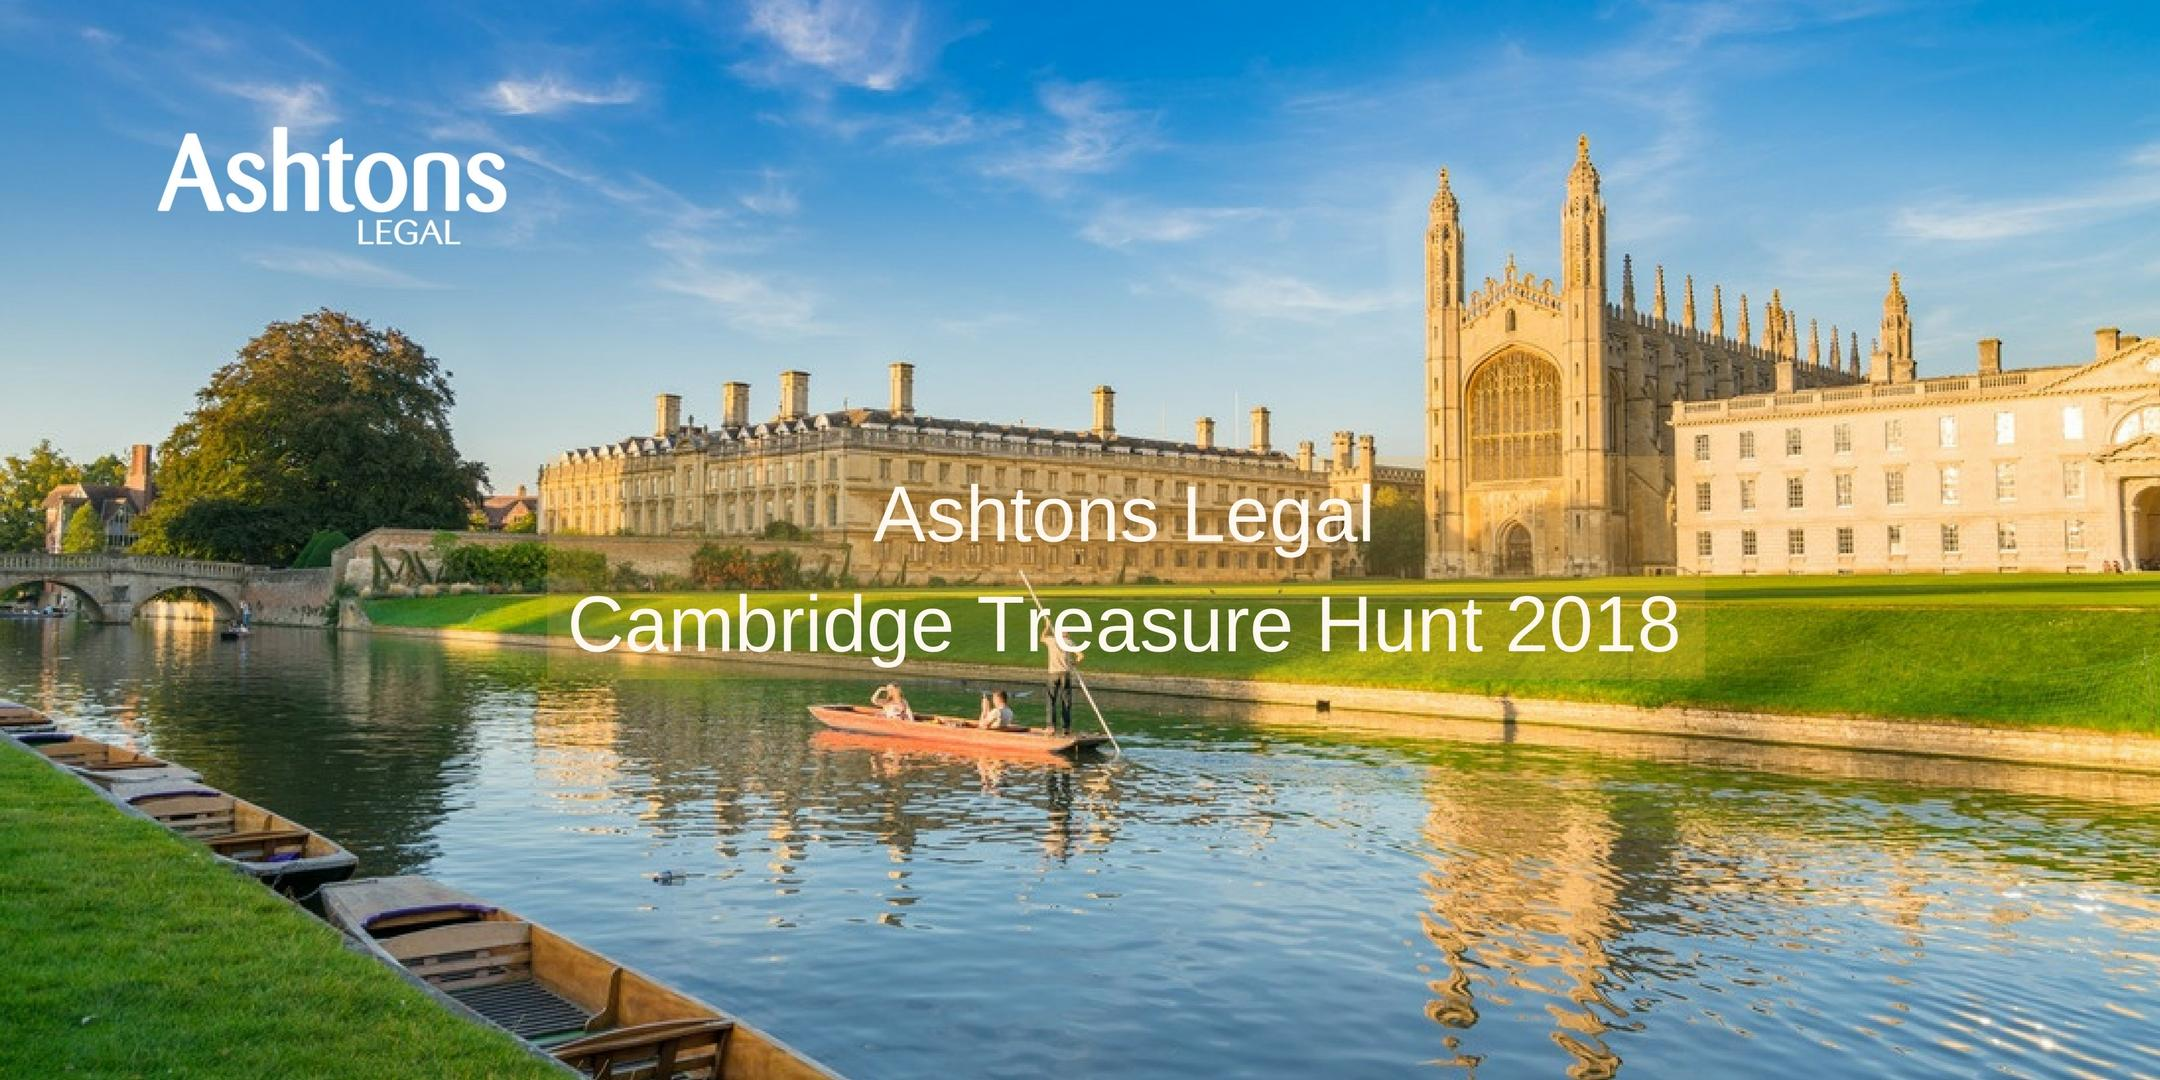 Ashtons Legal Cambridge Treasure Hunt